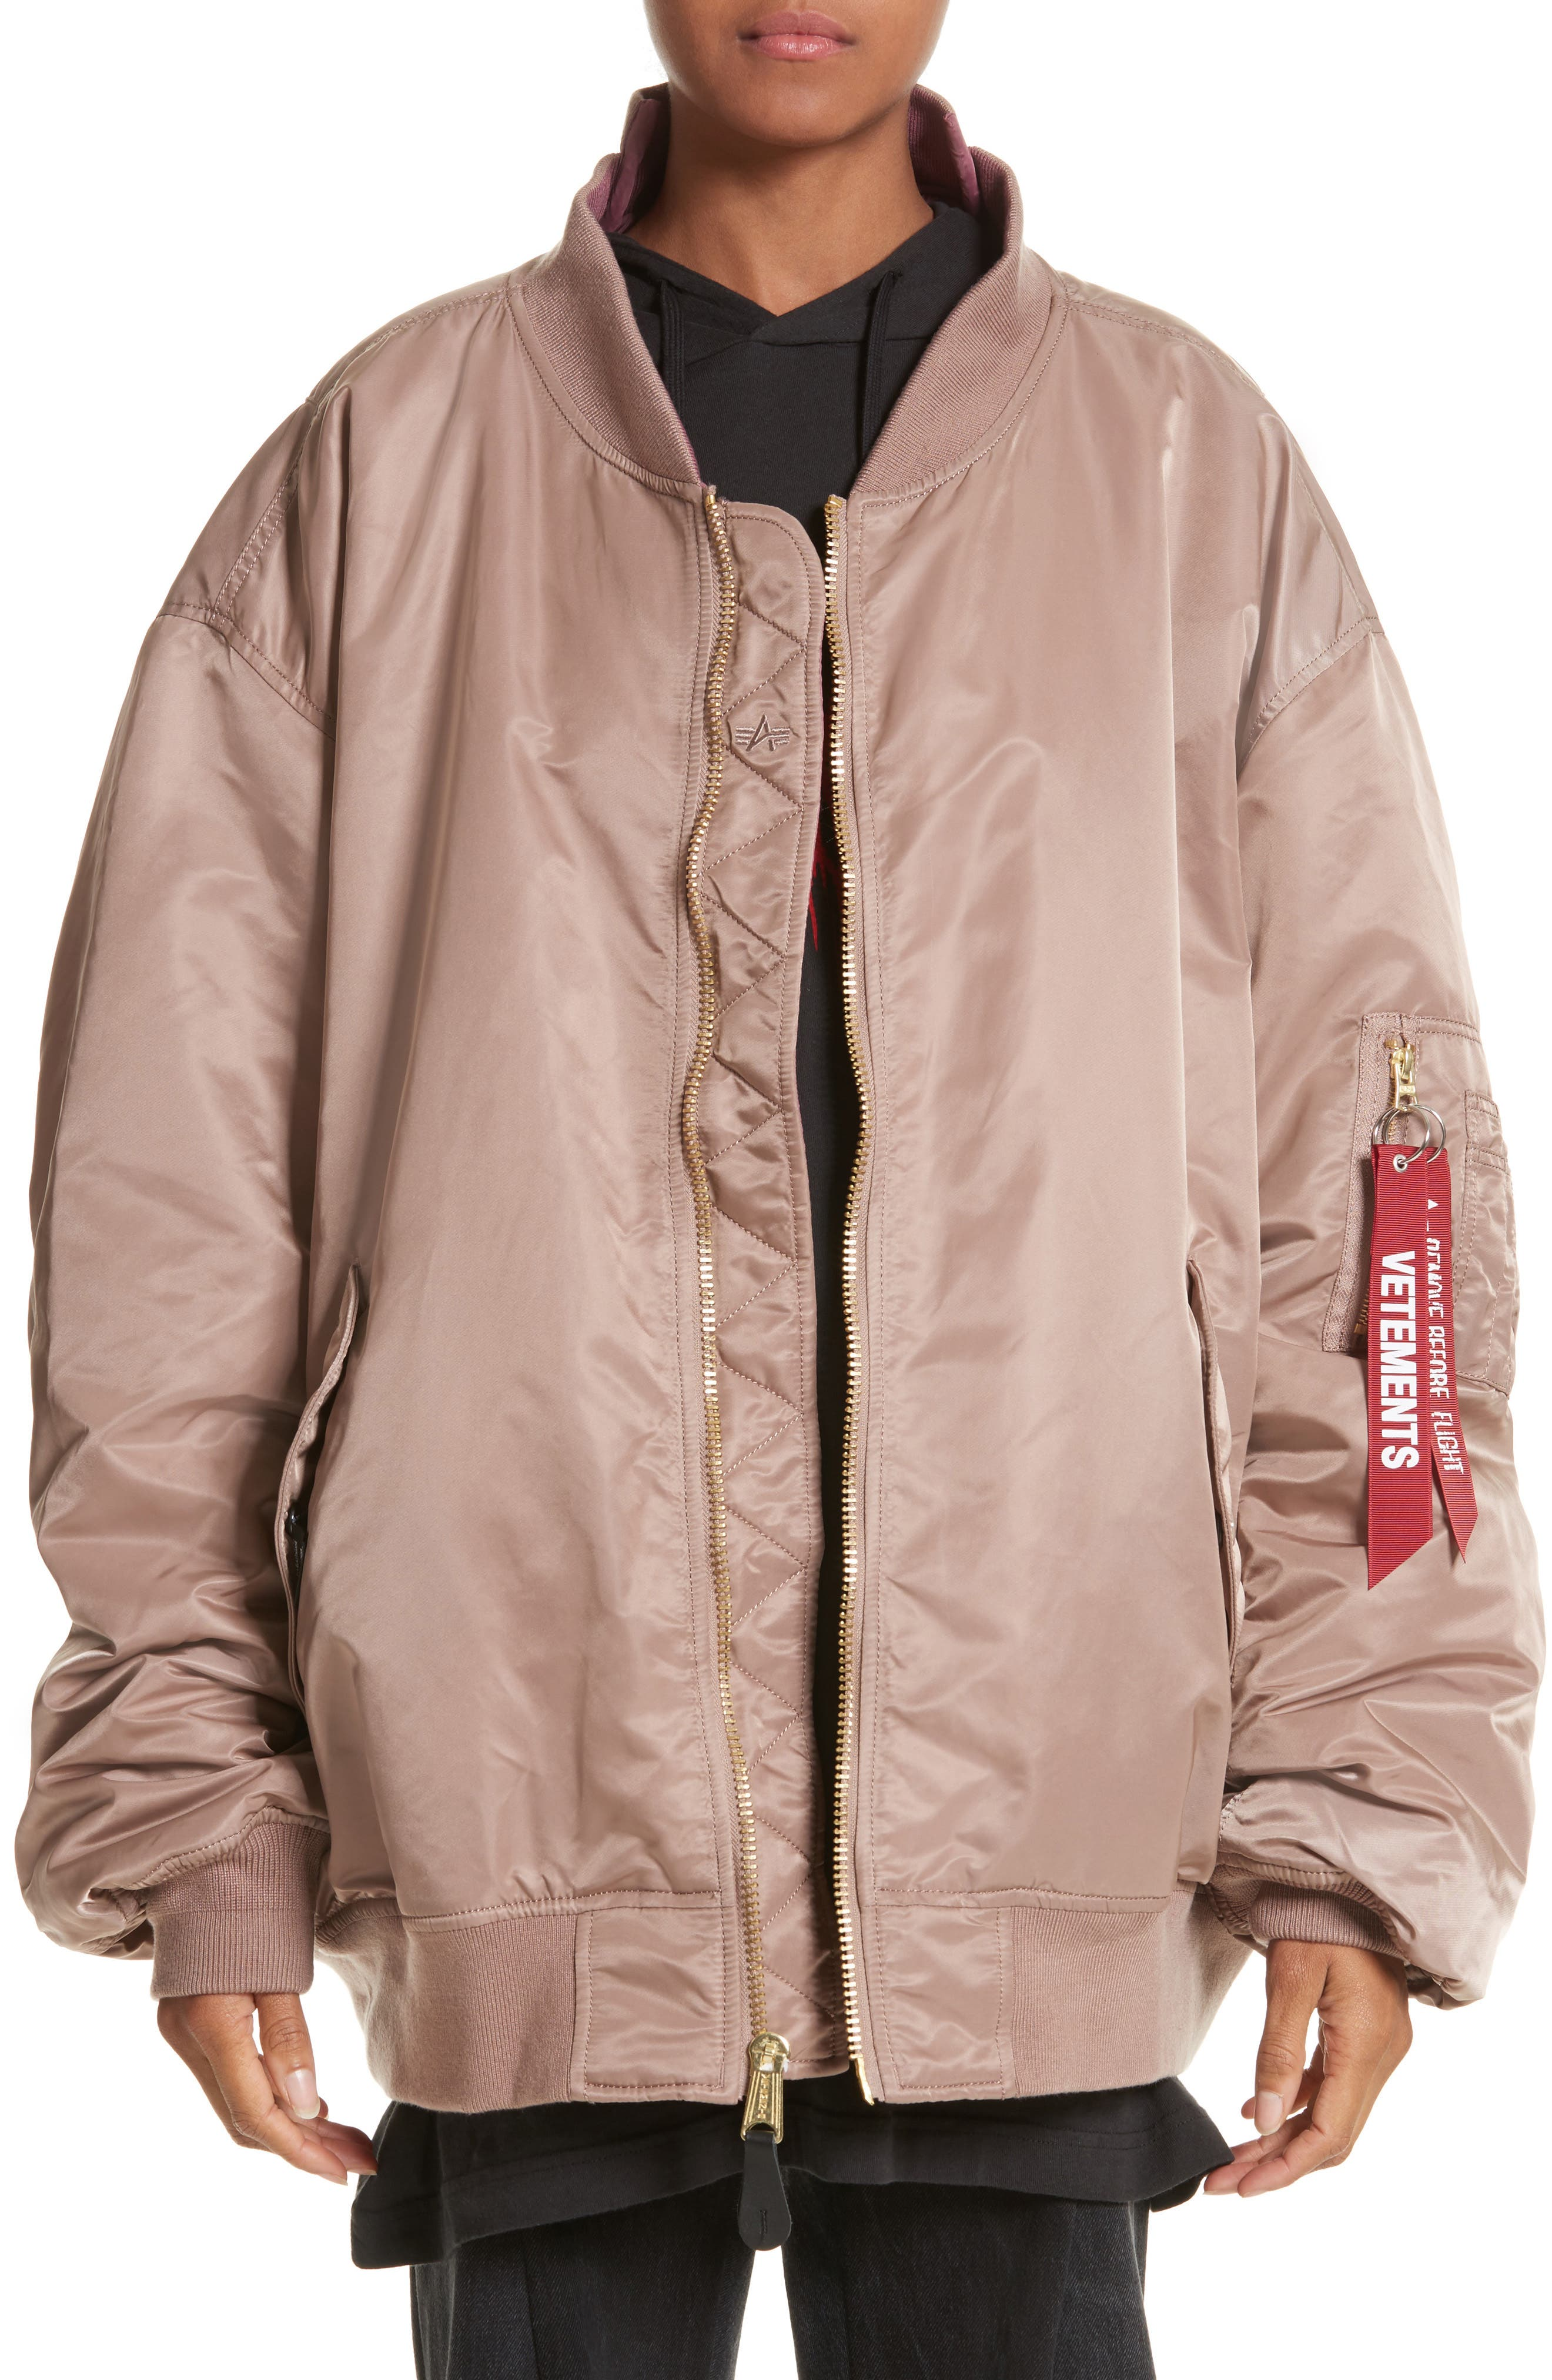 x Alpha Industries Reversible Bomber Jacket,                         Main,                         color, Rose Pink